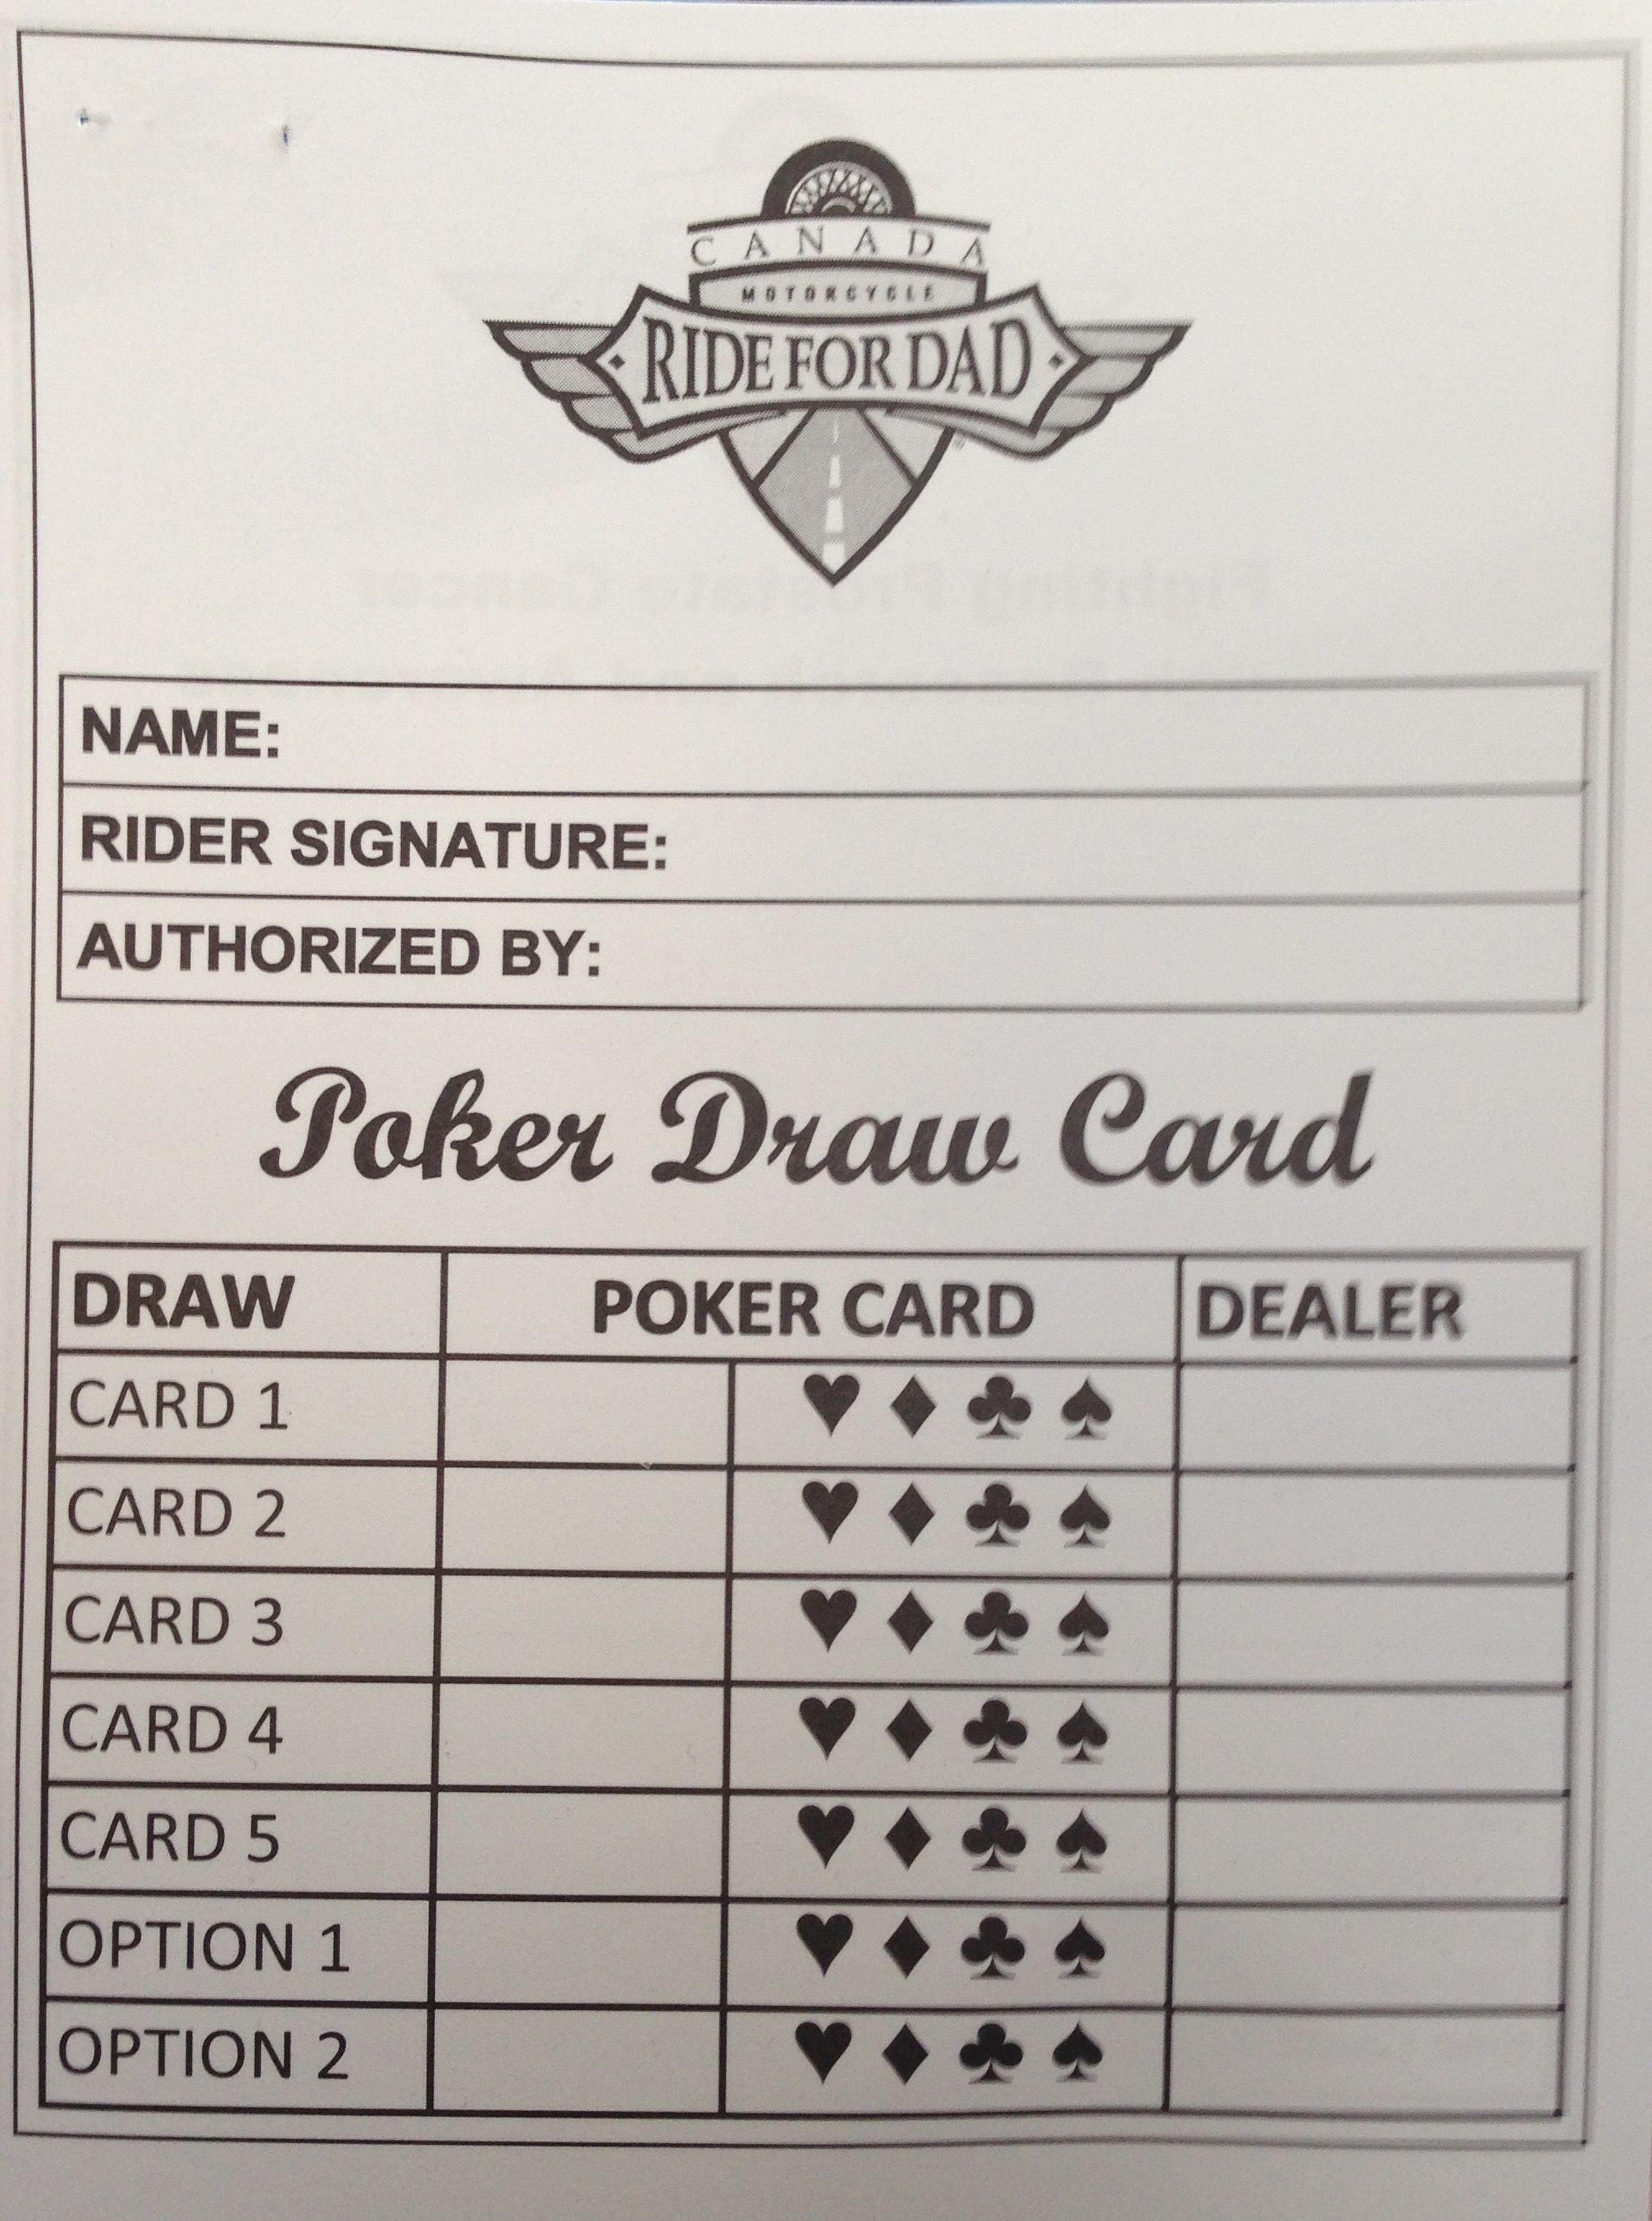 Poker run card